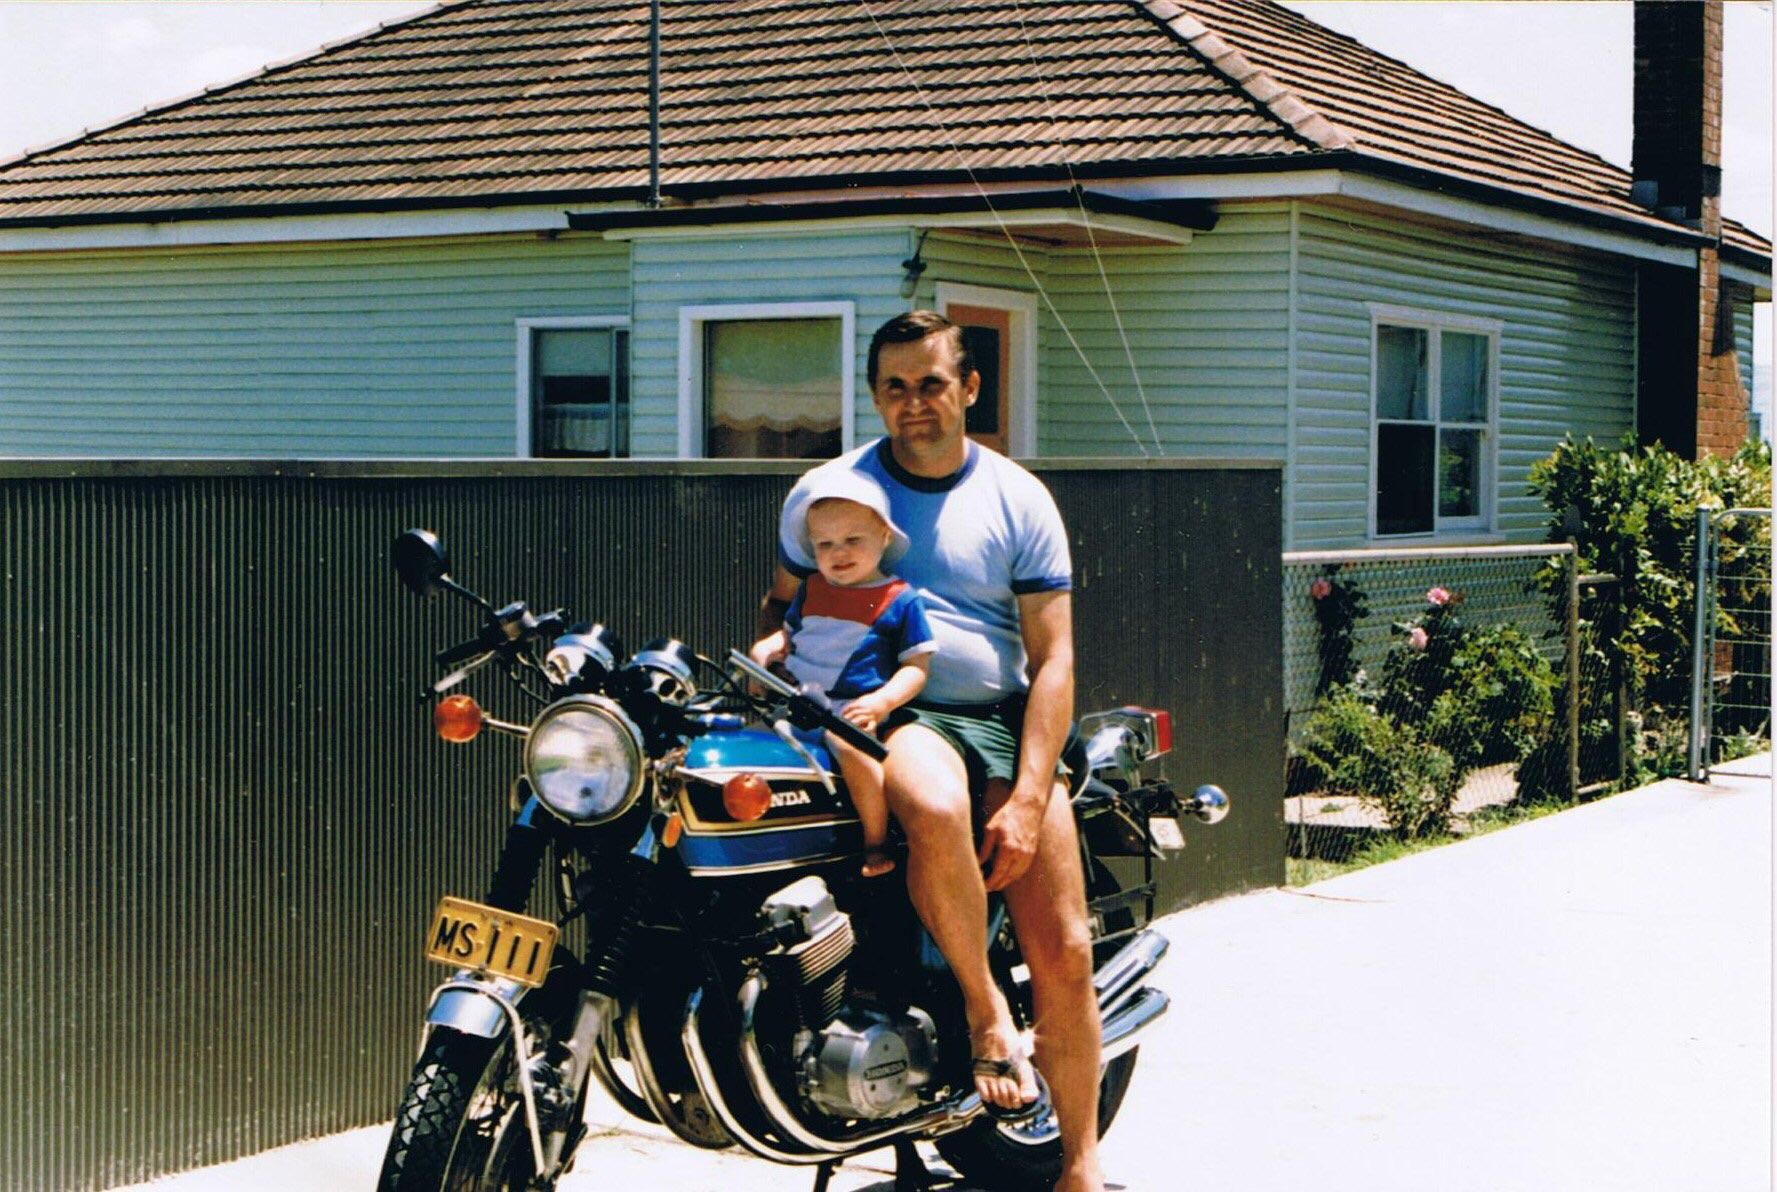 Father and son hanging out on a newish Honda cb750 [Circa 1975]